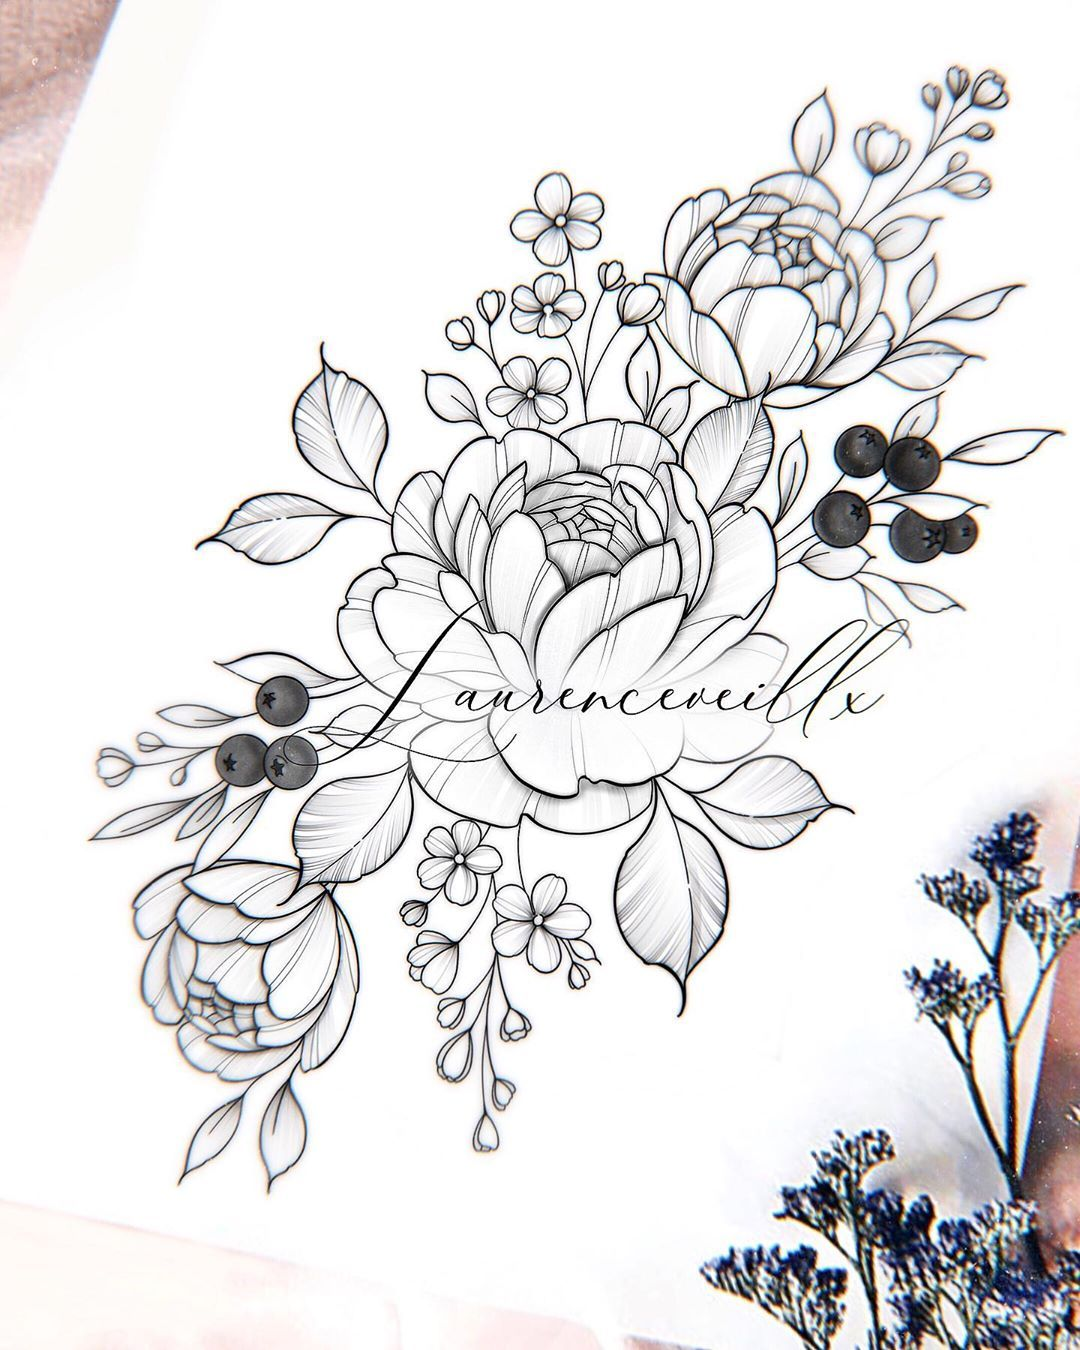 """, Laurence   Artist 💫 on Instagram: """"♡Floral design SOLD – NOT available♡ ⠀⠀⠀⠀⠀⠀⠀⠀⠀ You can buy my drawing on my etsy shop🍂💜 ⠀⠀⠀⠀⠀⠀⠀⠀⠀ The purchase gives you permission to get…"""", My Tattoo Blog 2020, My Tattoo Blog 2020"""